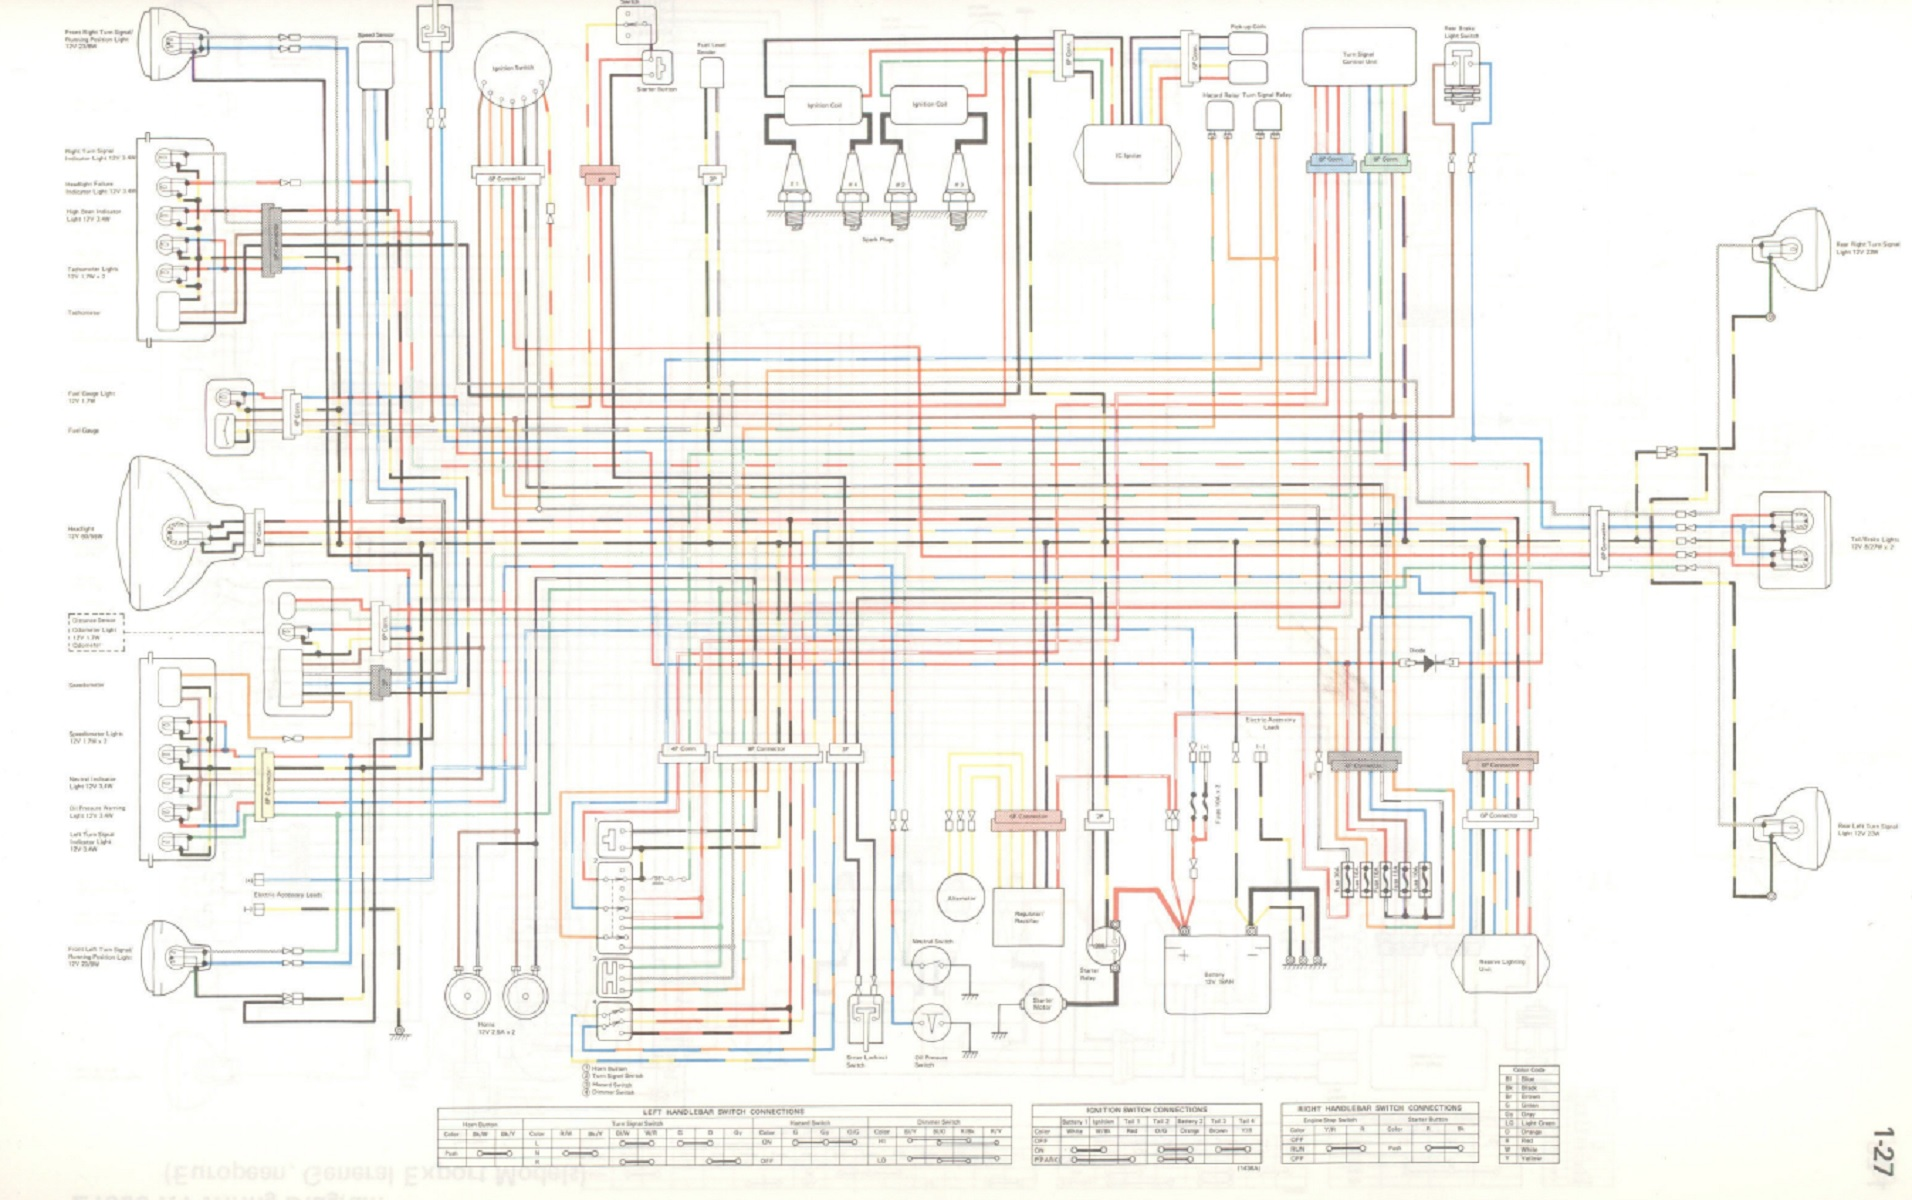 kz1000 police wiring diagram - fordmanuals 1969 colorized mustang wiring  diagrams ebook for wiring diagram schematics  wiring diagram schematics